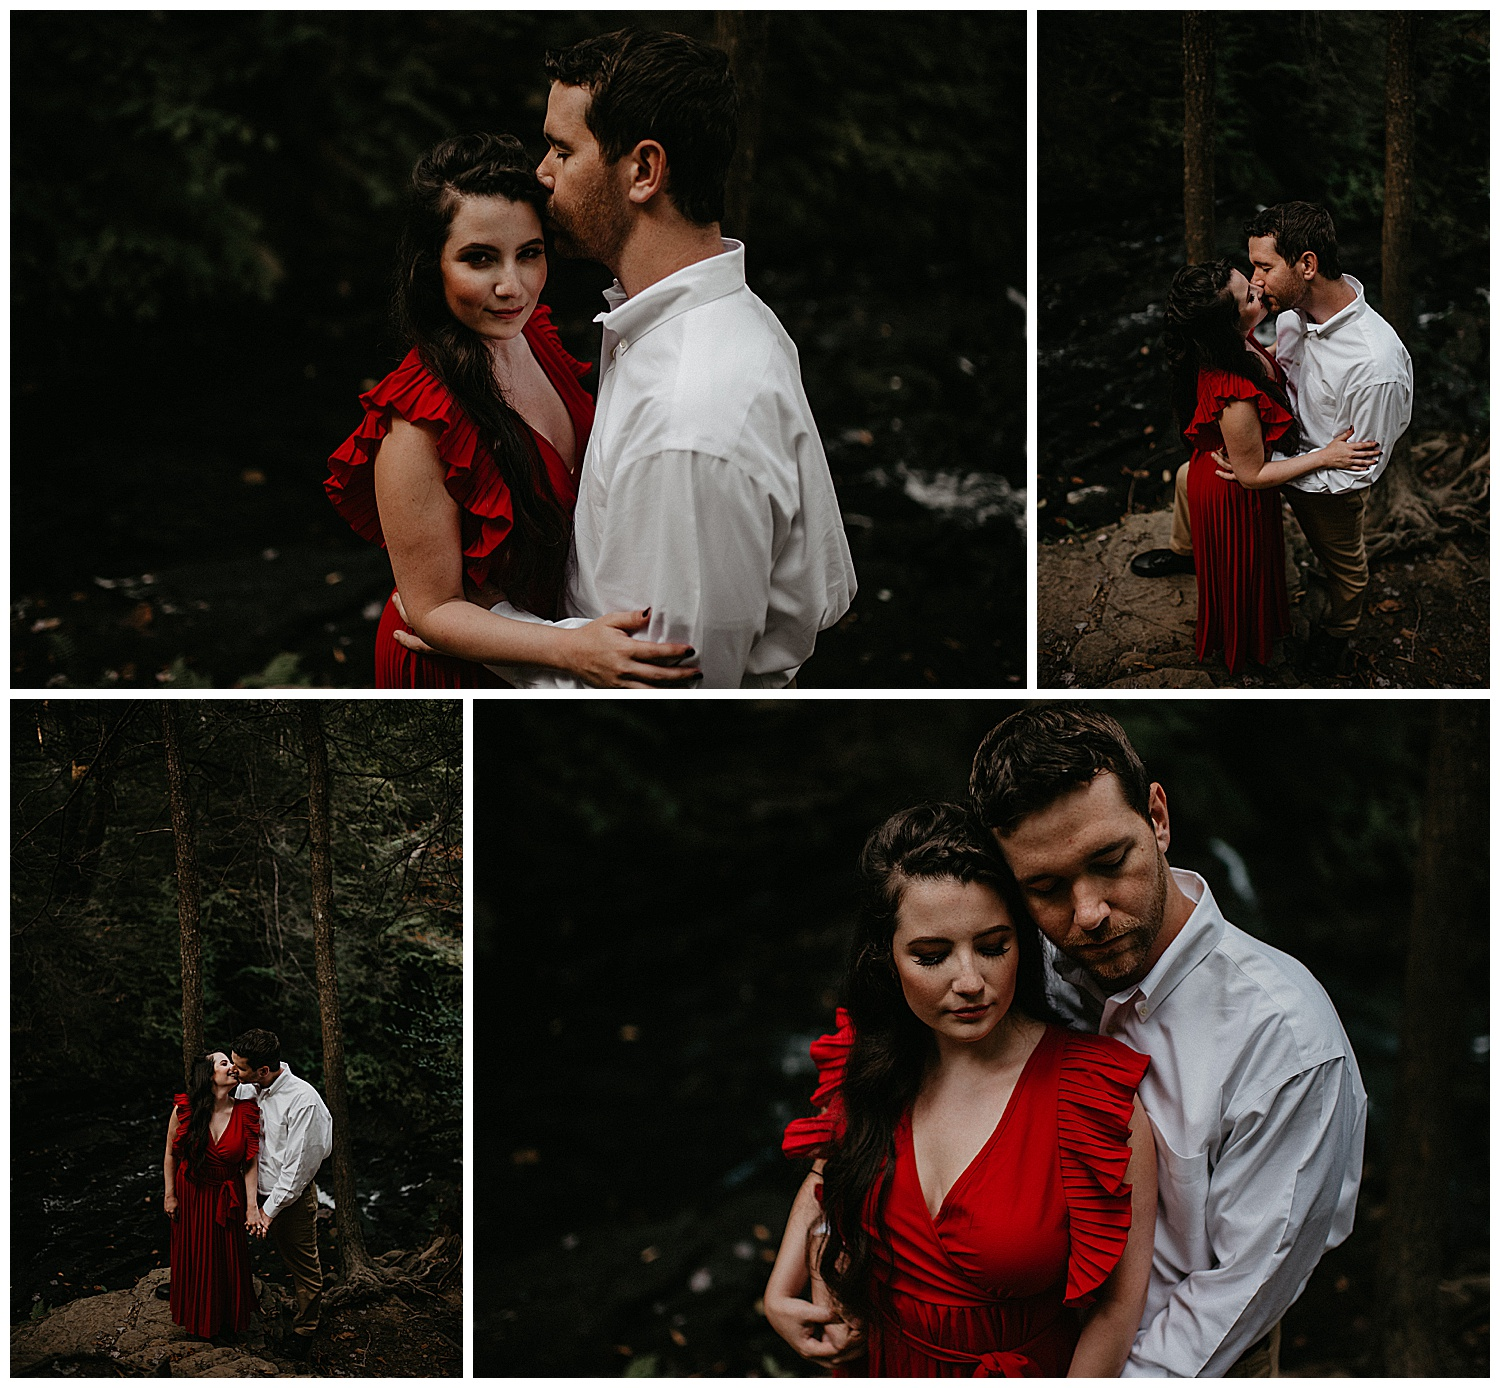 NEPA-Wedding-Engagement-Photographer-at-Ricketts-Glen-State-Park-Benton-PA_0006.jpg